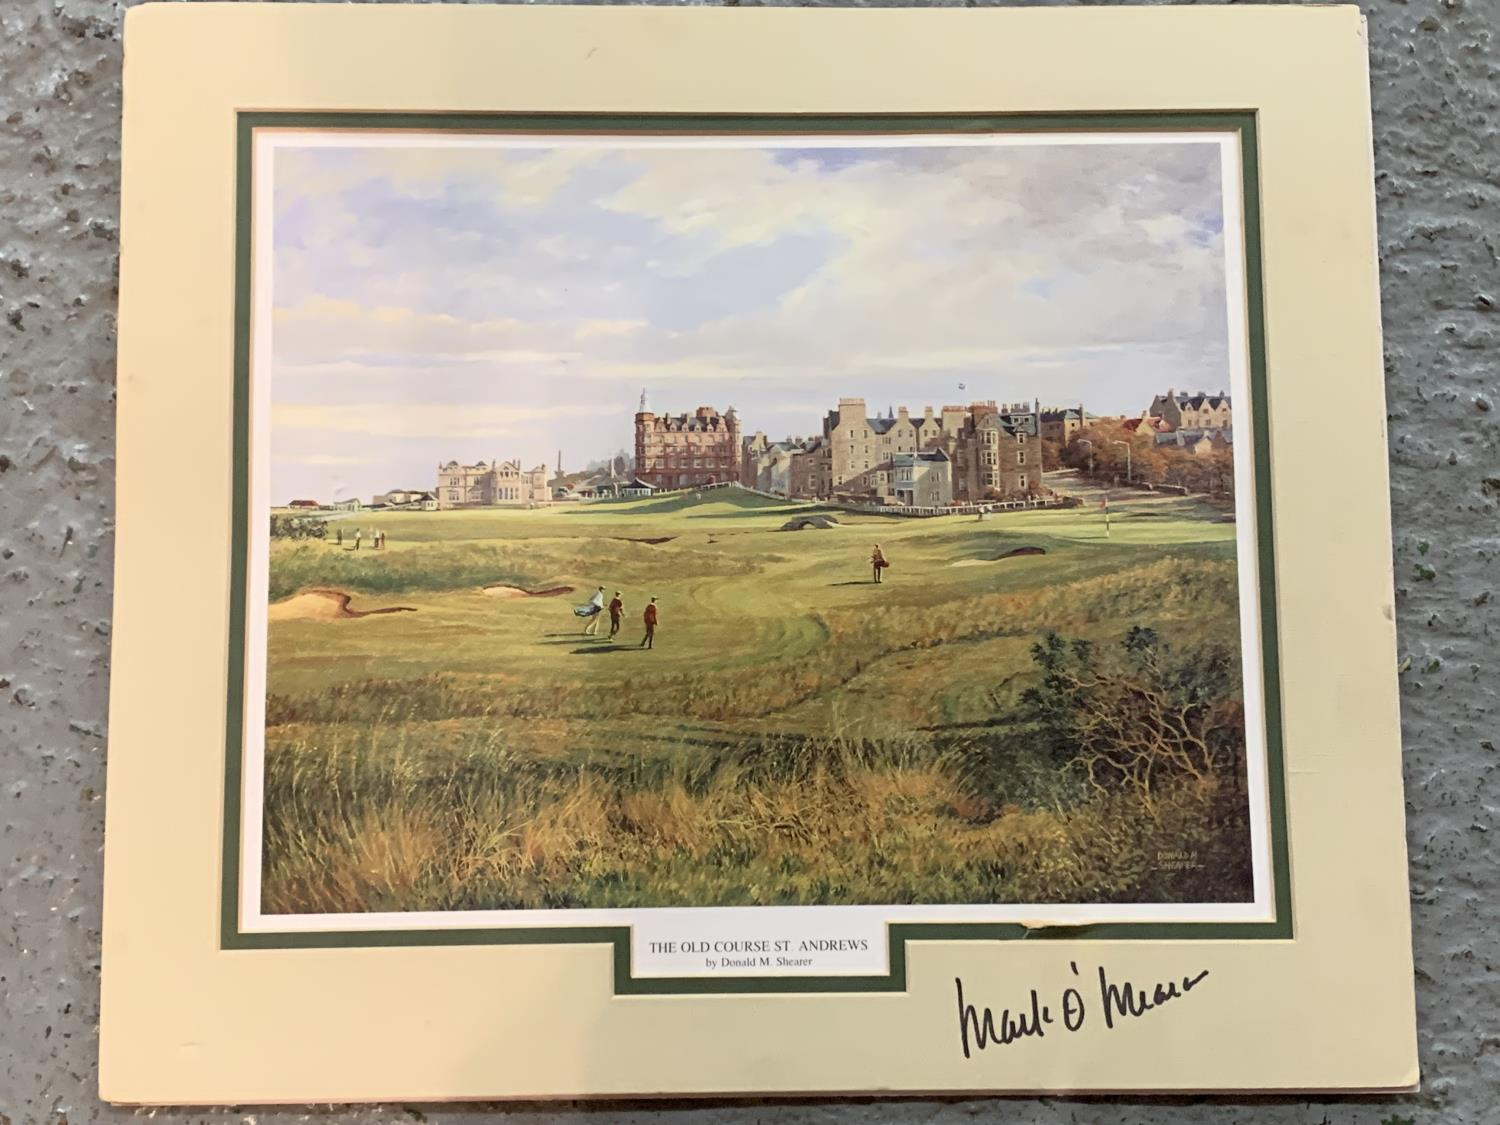 A MOUNTED PRINT OF THE OLD COURSE ST ANDREWS WITH AN INDISTINCT SIGNATURE - Image 2 of 6